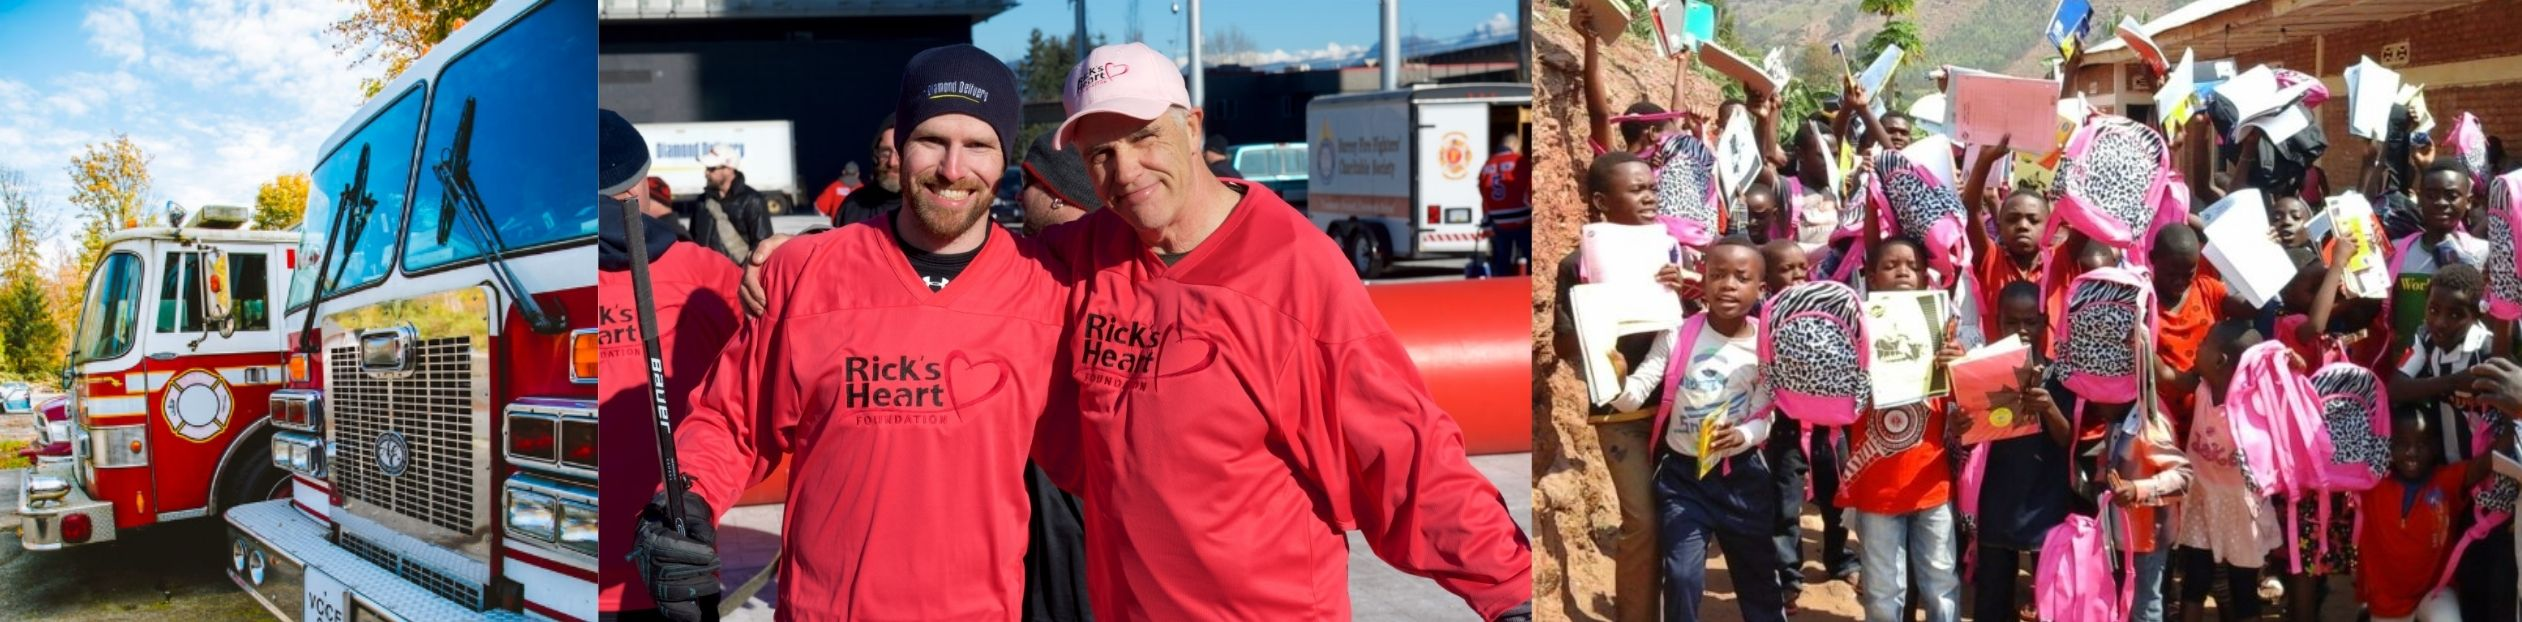 Rick's Heart Foundation Surrey Charity Diamond Delivery